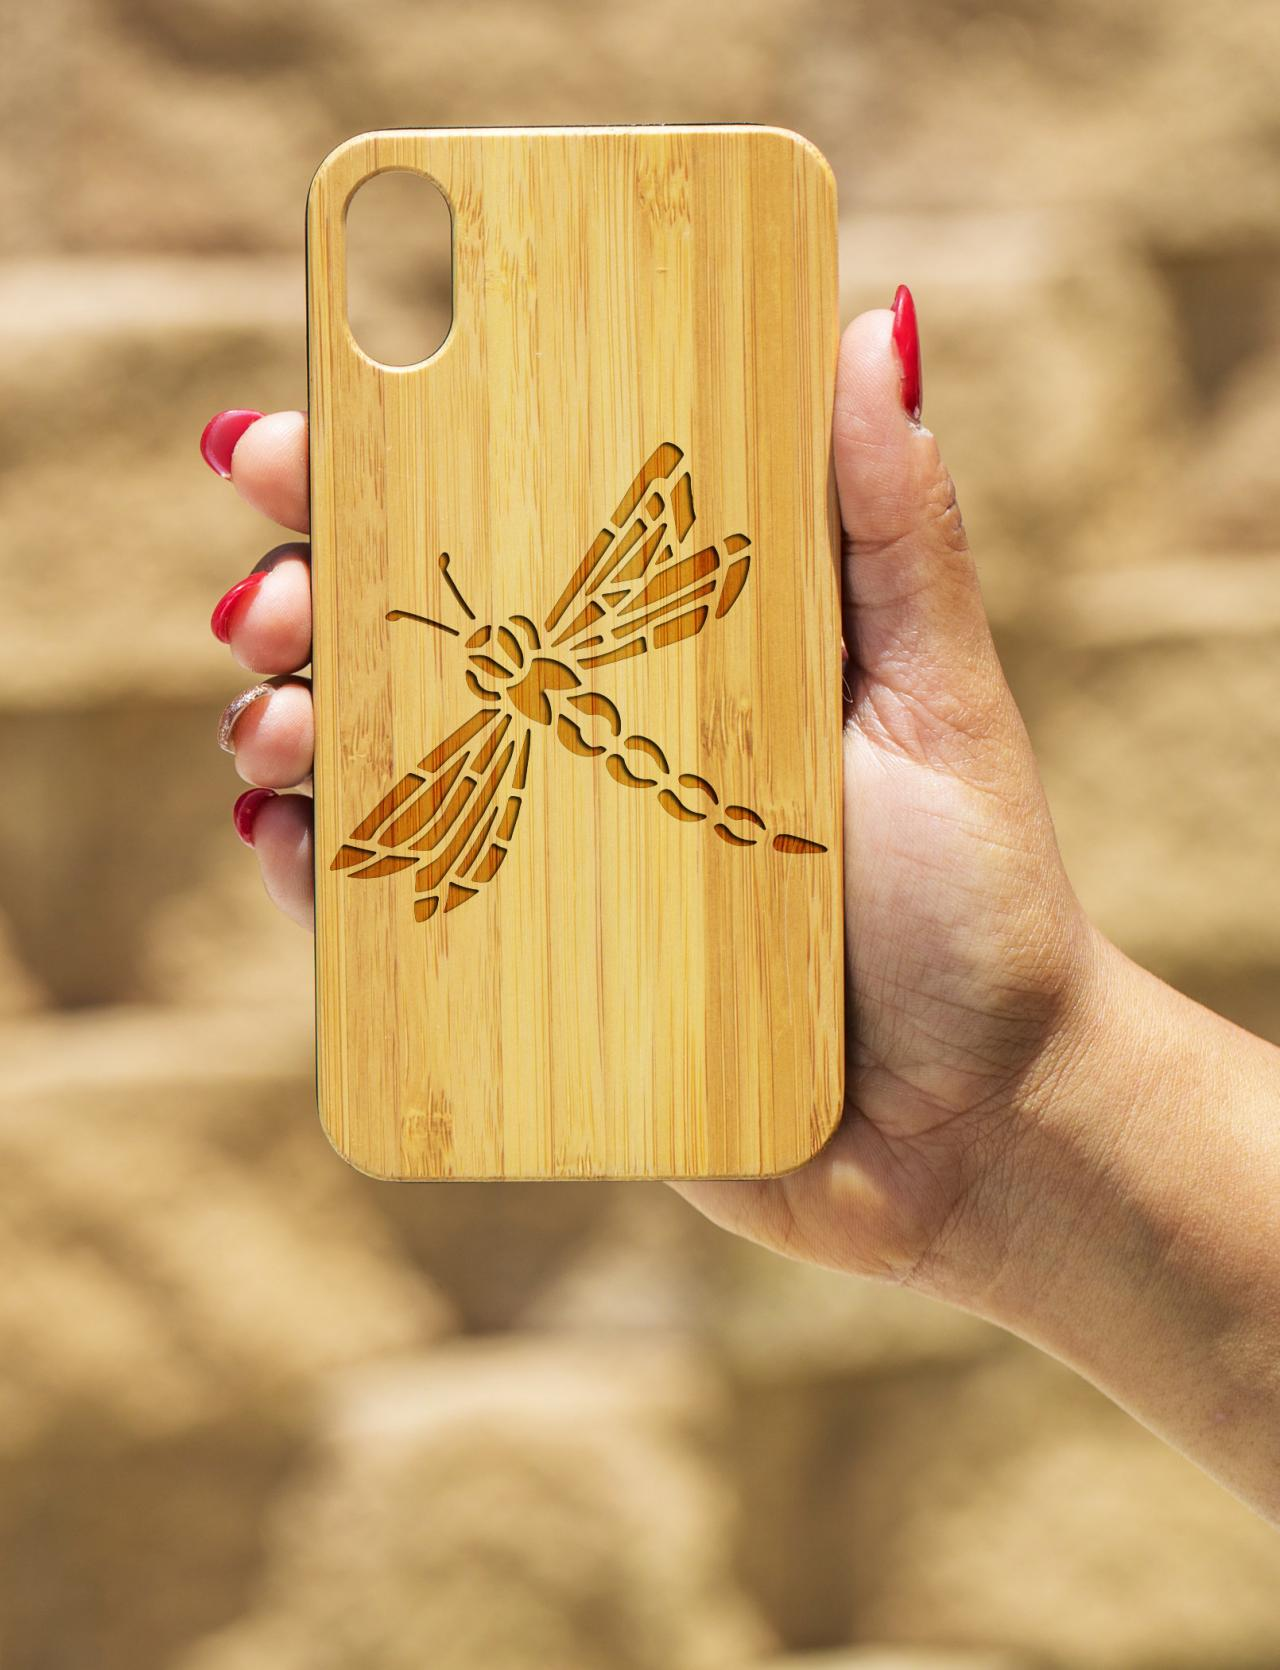 Dragon Fly IPhone X Case, Engraved Iphone X case, Wooden Engraved Iphone X Case, Iphone case, Beautiful Gift for here, unique, dragonfly